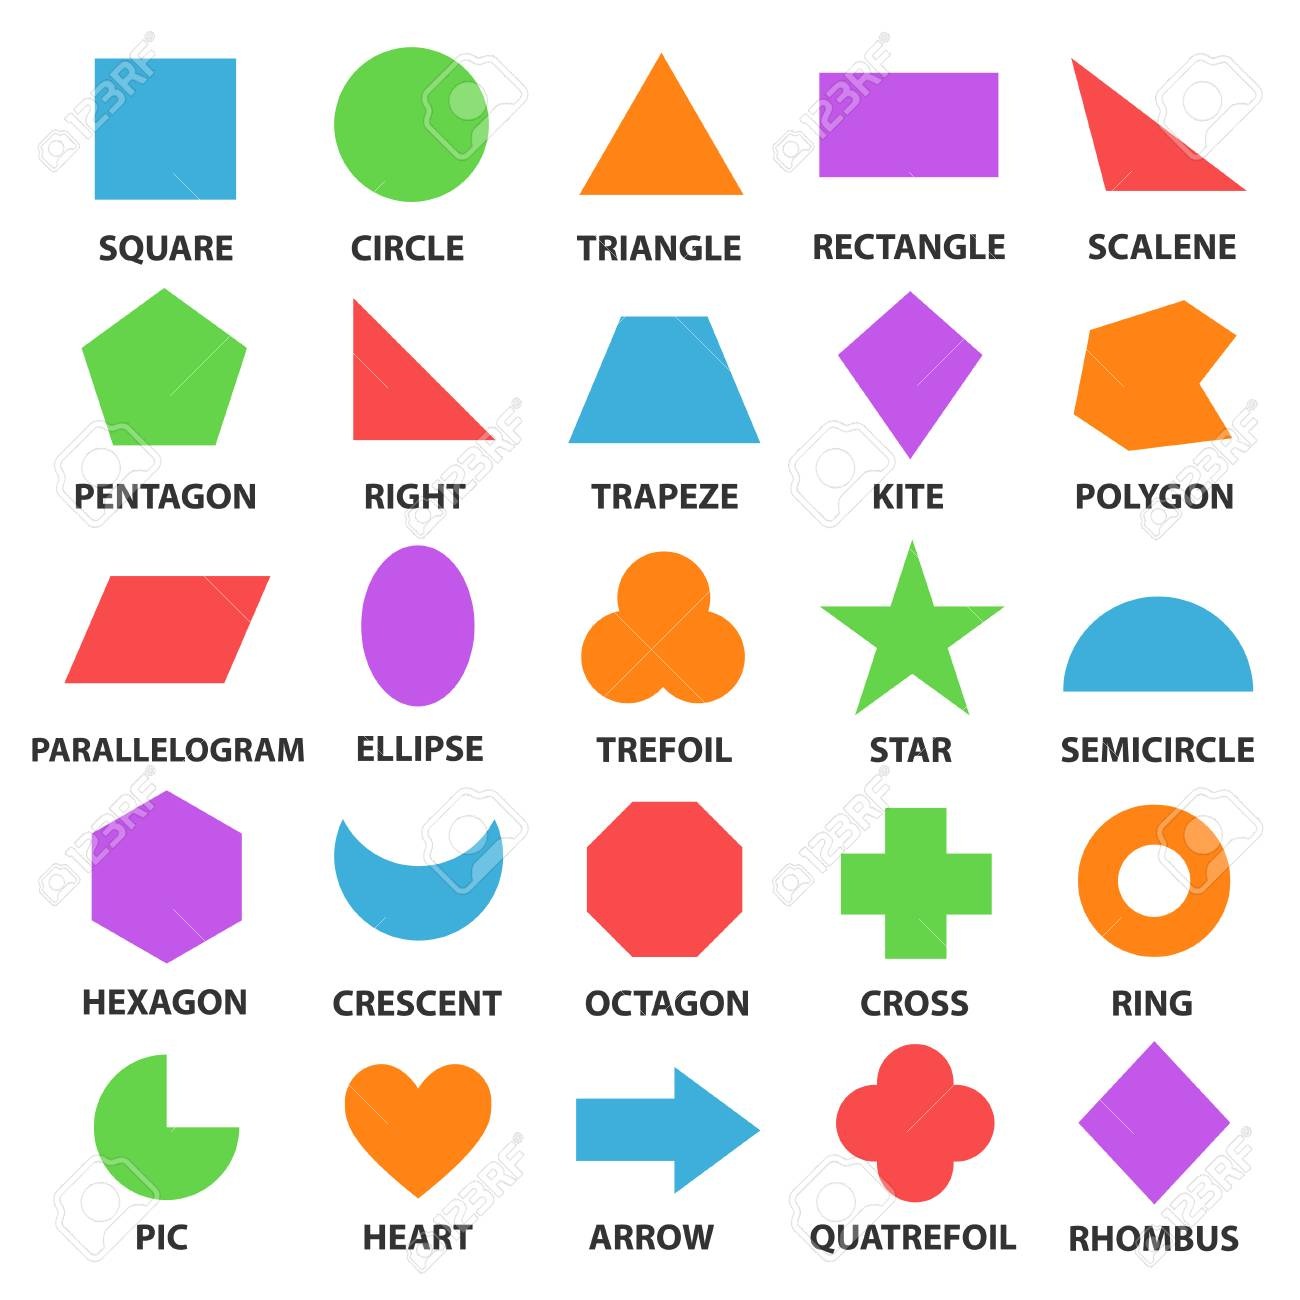 educational geometric shapes set understanding of geometry postereducational geometric shapes set understanding of geometry poster for teaching and learning in school